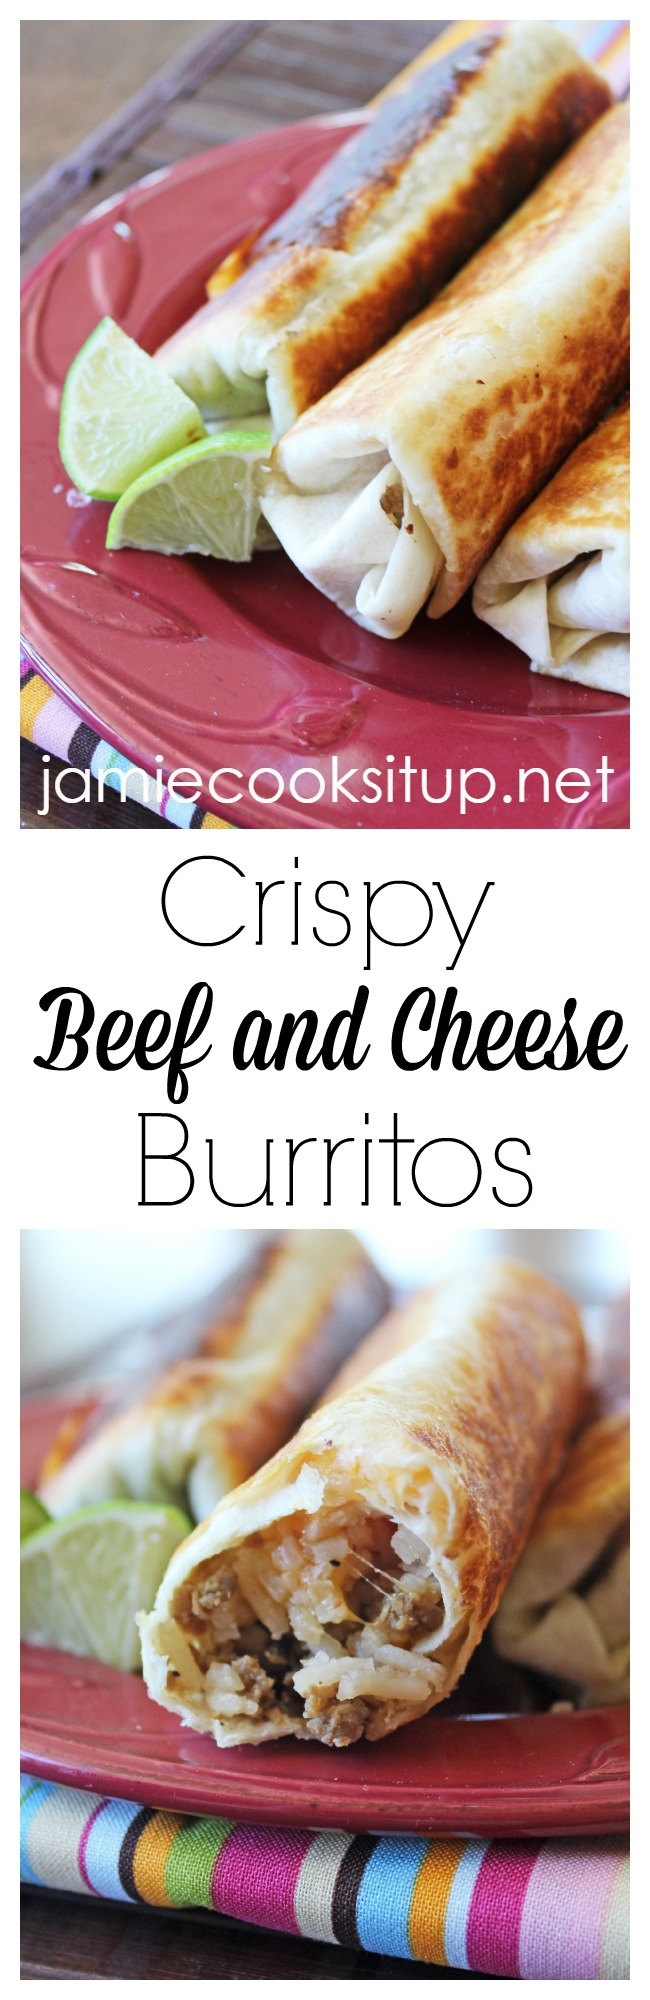 Crispy Beef and Cheese Burritos from Jamie Cooks It Up